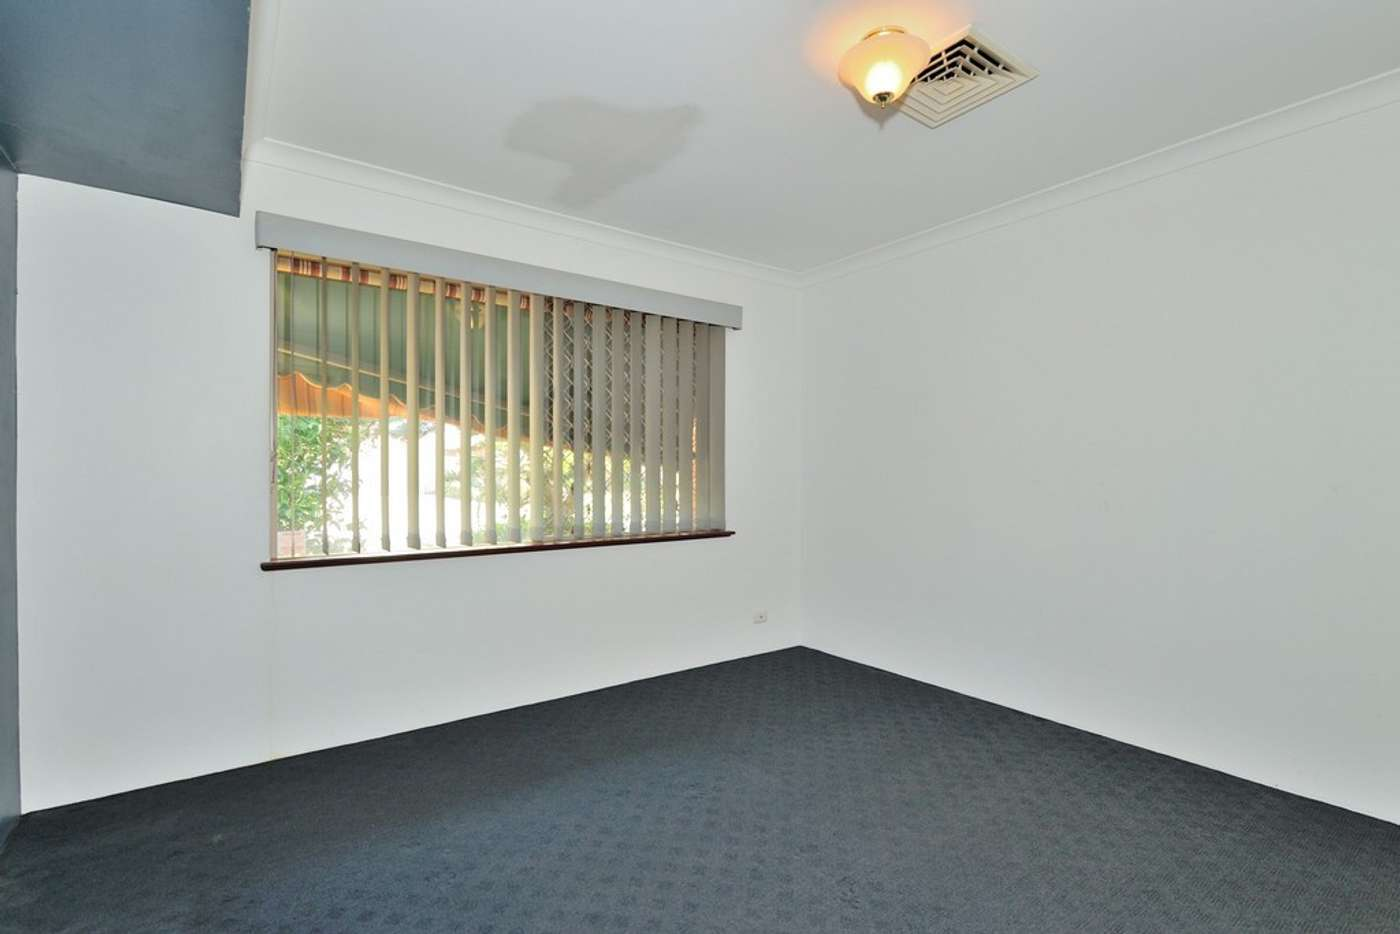 Seventh view of Homely house listing, 16 Seacom Ct, Morley WA 6062